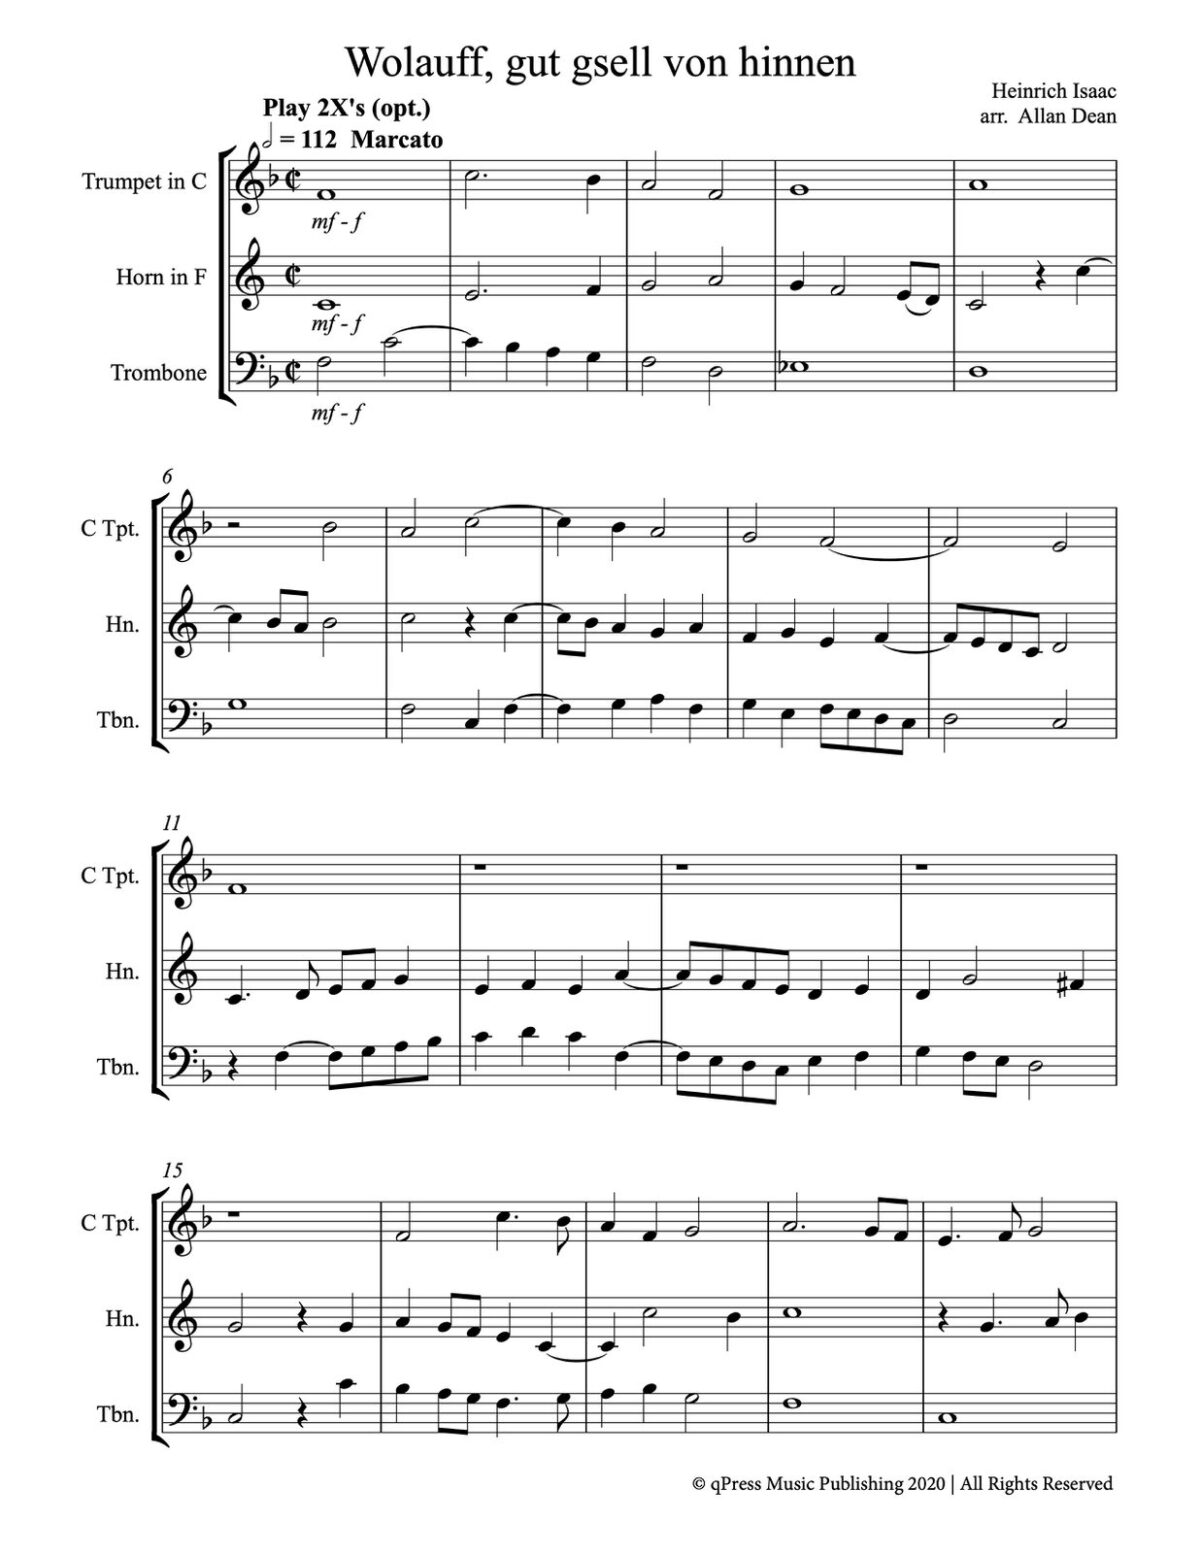 Dean, Music of Isaac (Score & Parts)-p85